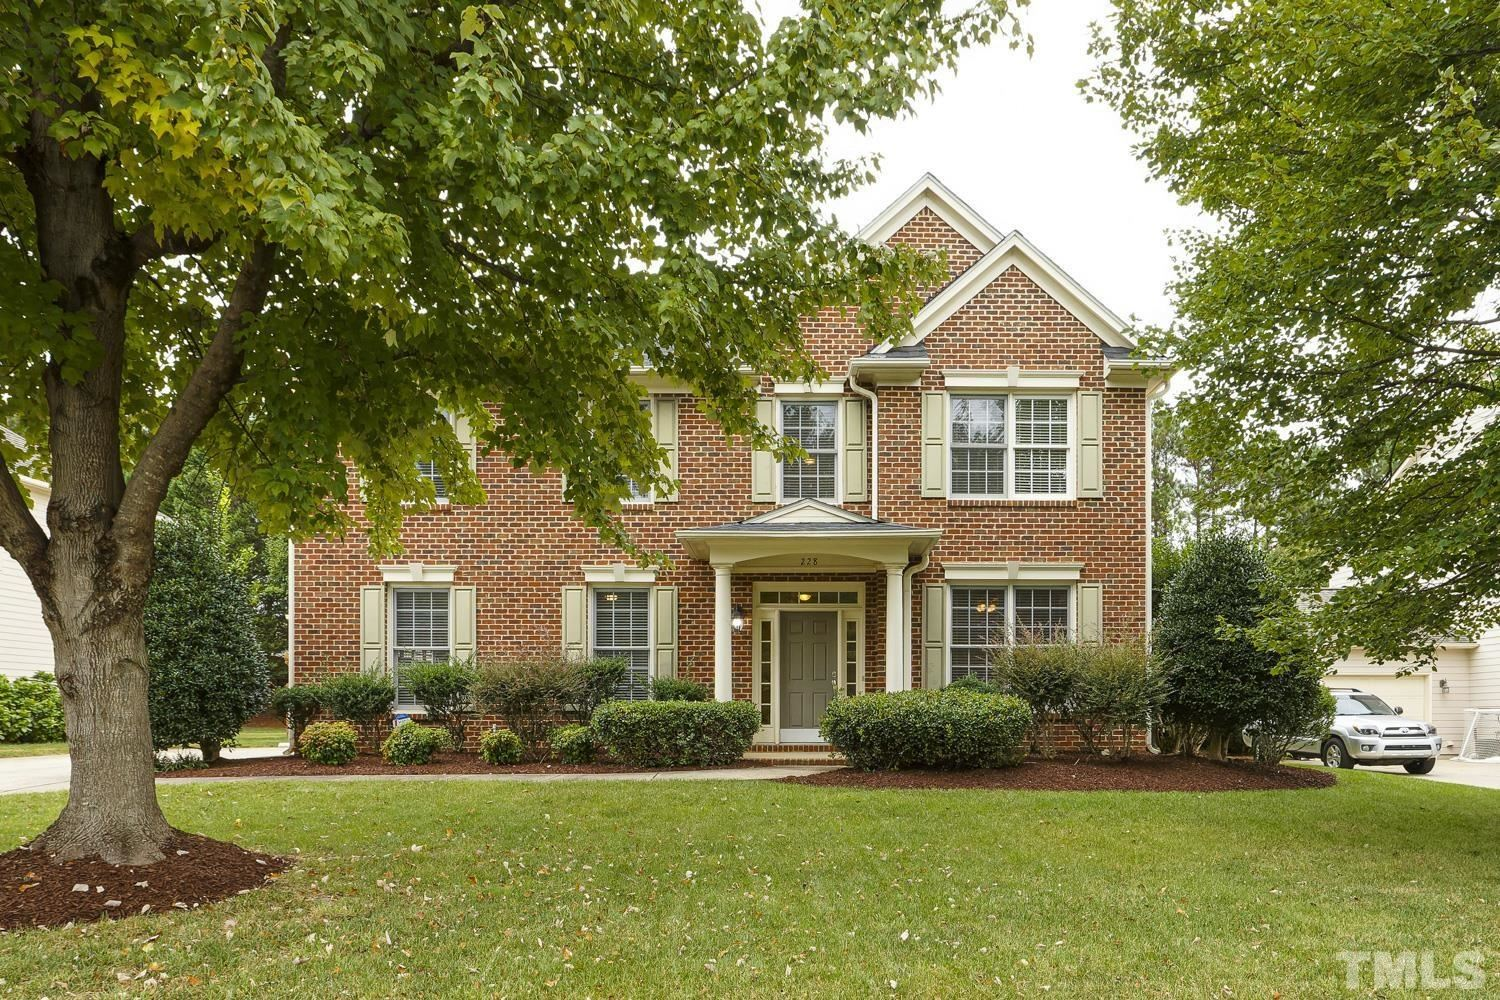 Photo of 228 Shillings Chase Drive, Cary, NC 27518-6483 (MLS # 2408825)